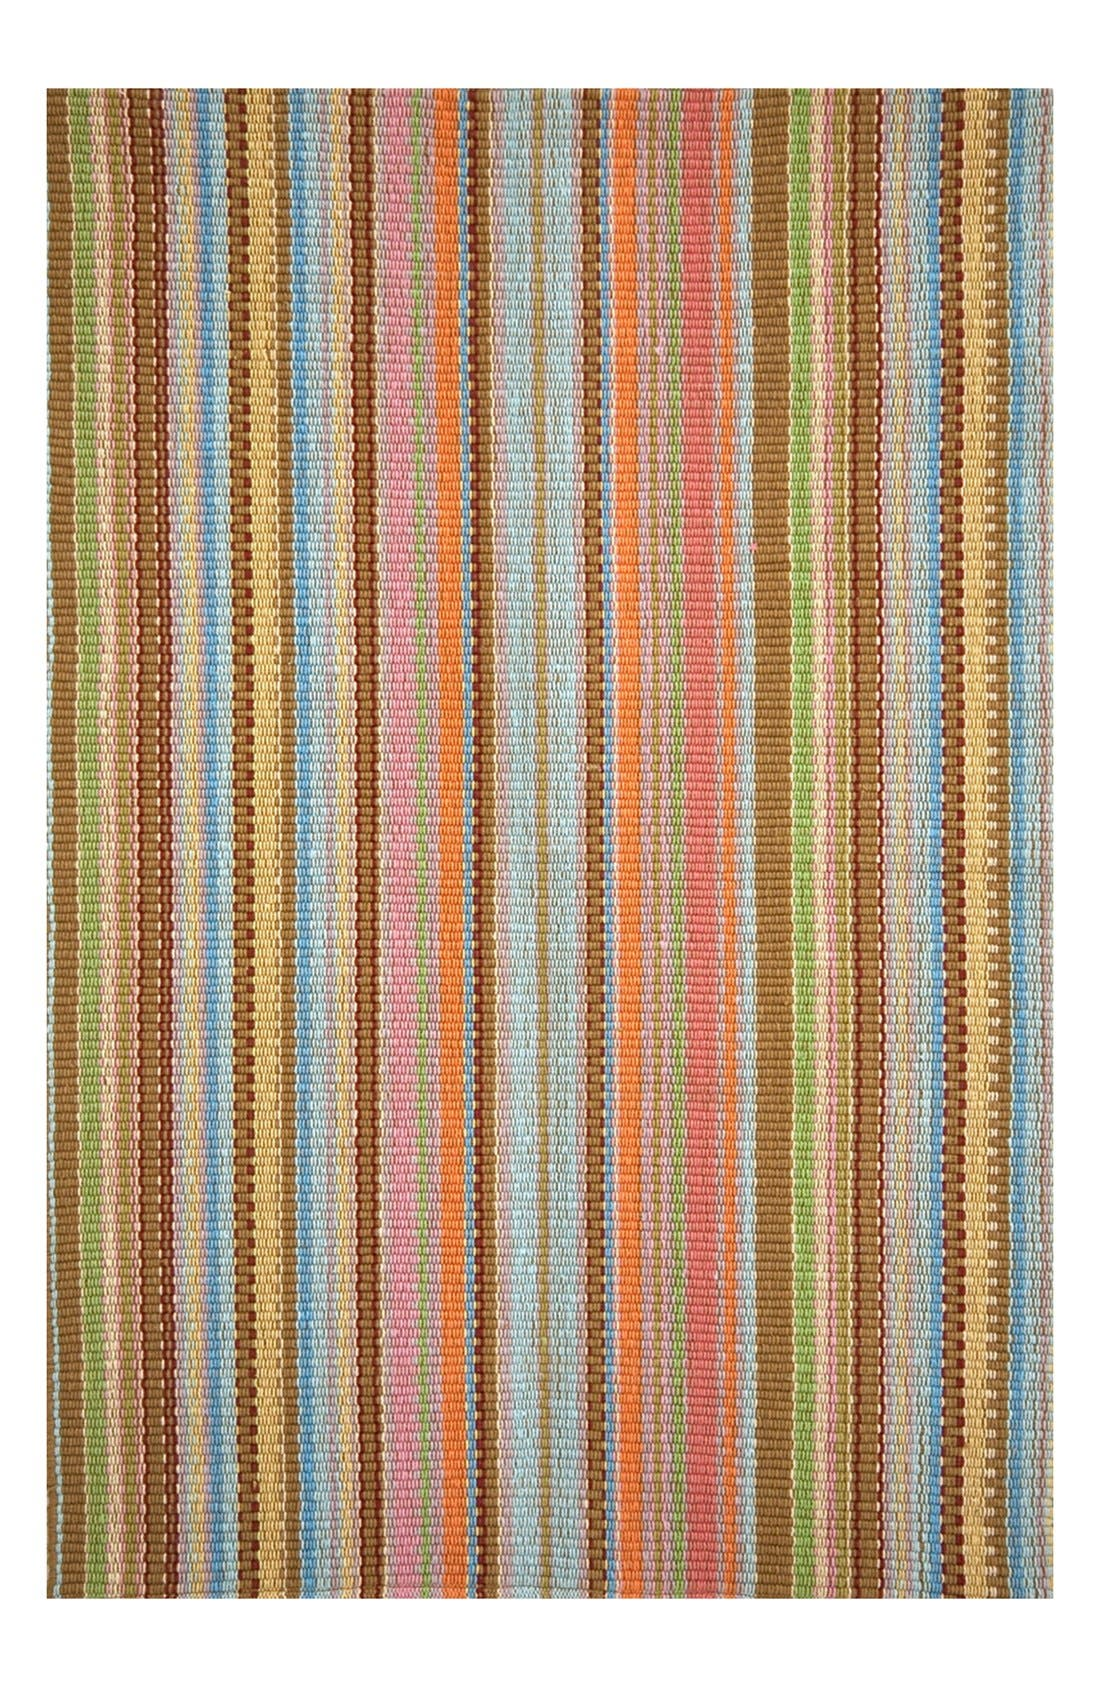 Alternate Image 1 Selected - Dash & Albert 'Zanzibar' Ticking Stripe Rug